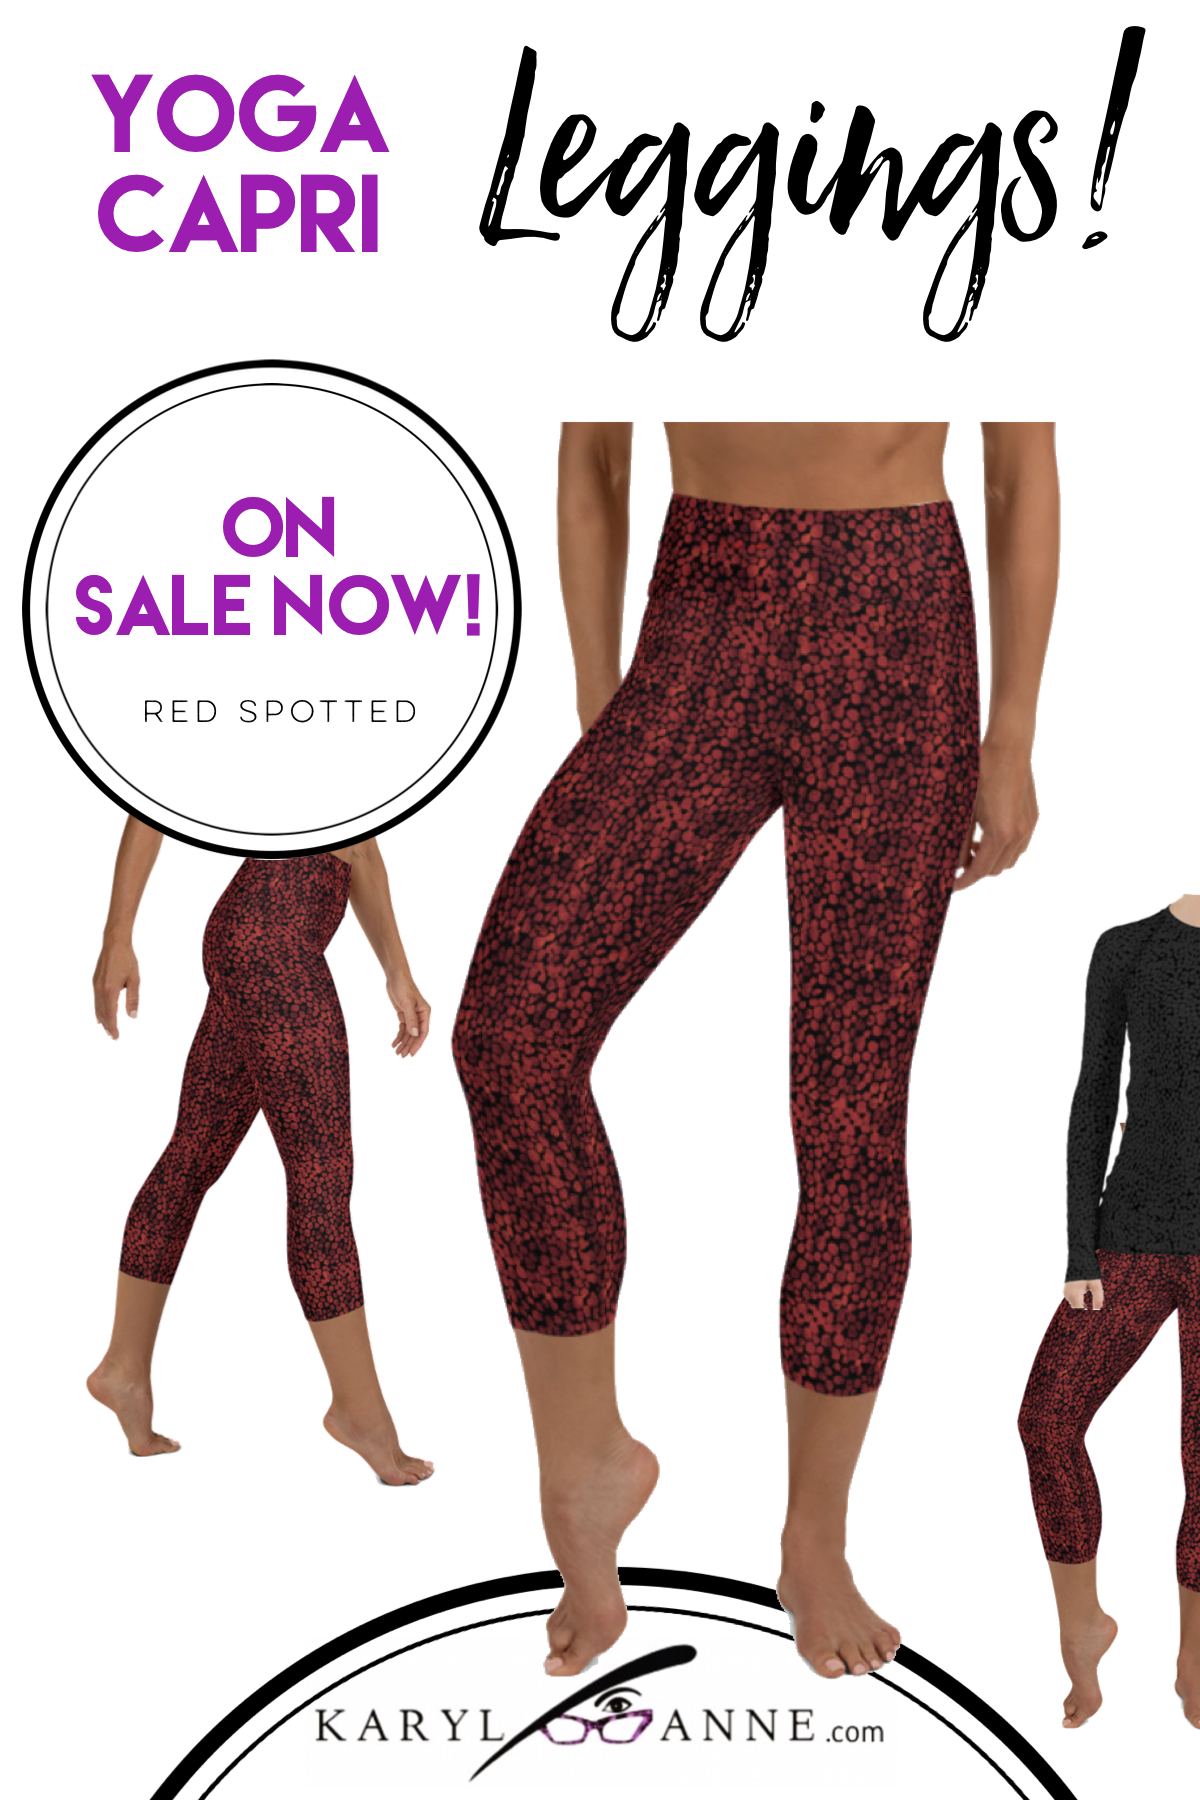 Women's sizes XS thru XL. Yoga Capri Leggings that are soft, rich, comfortable and classy enough for...